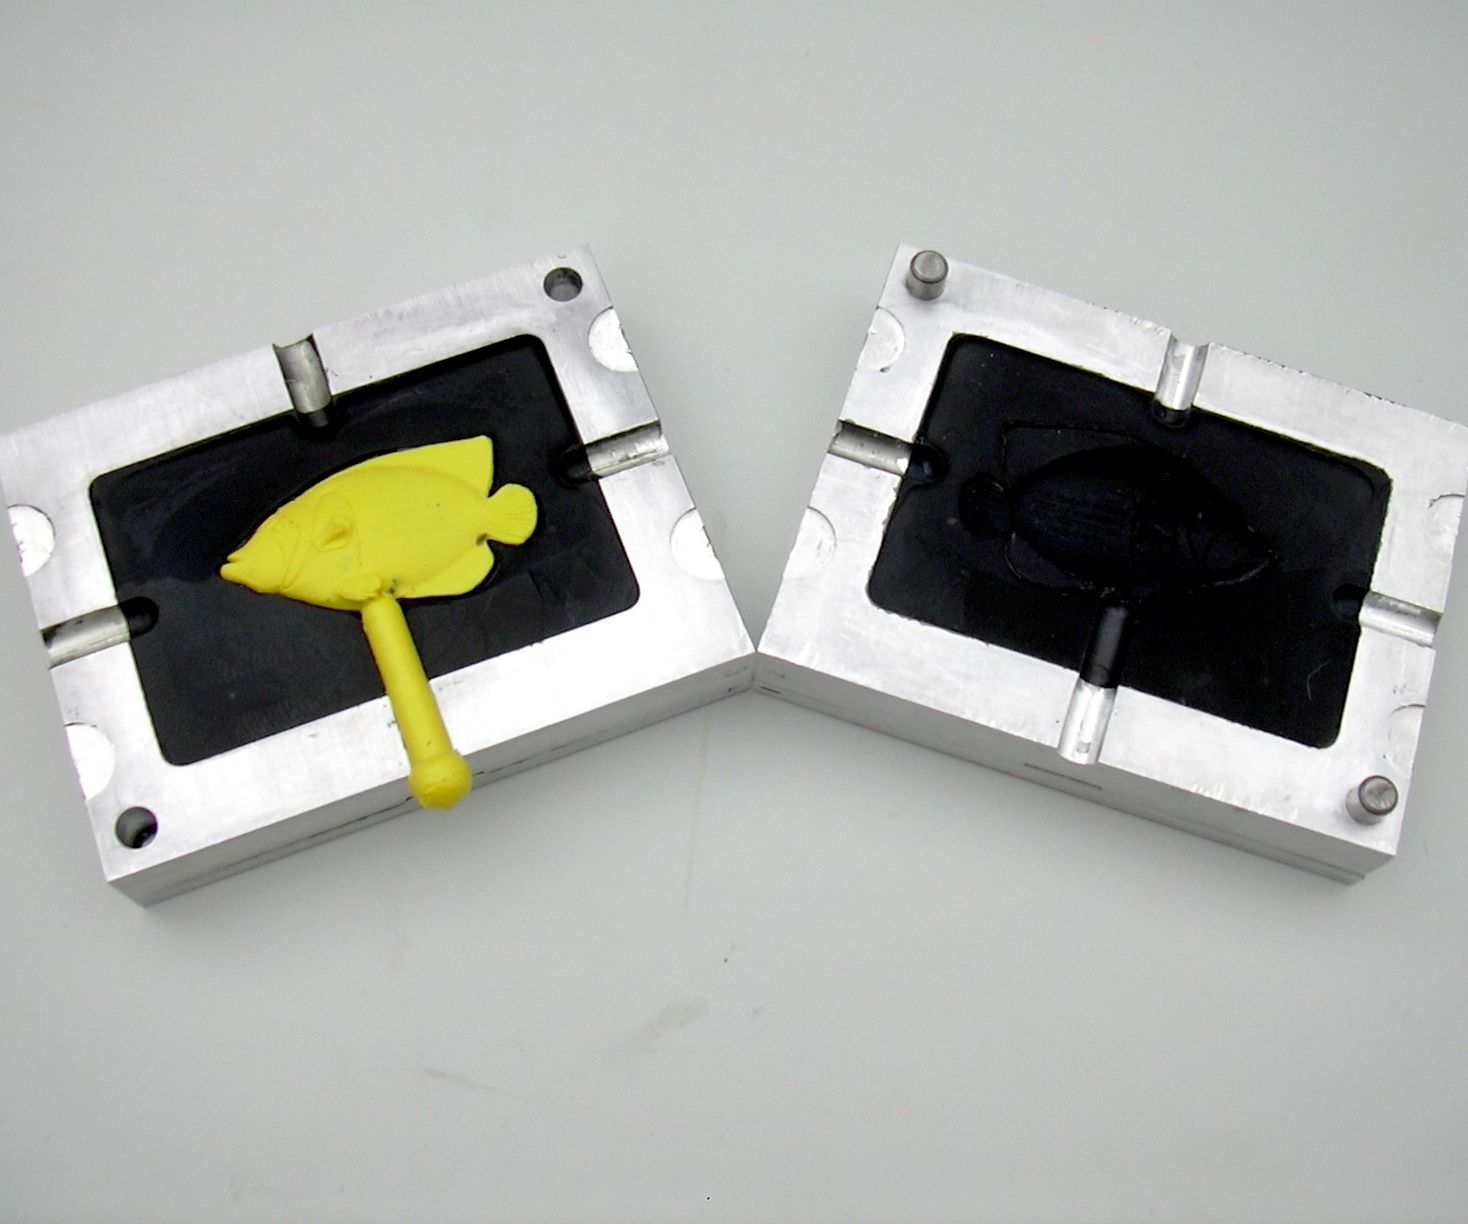 Home Plastic Injection Molding with an Epoxy Mold.